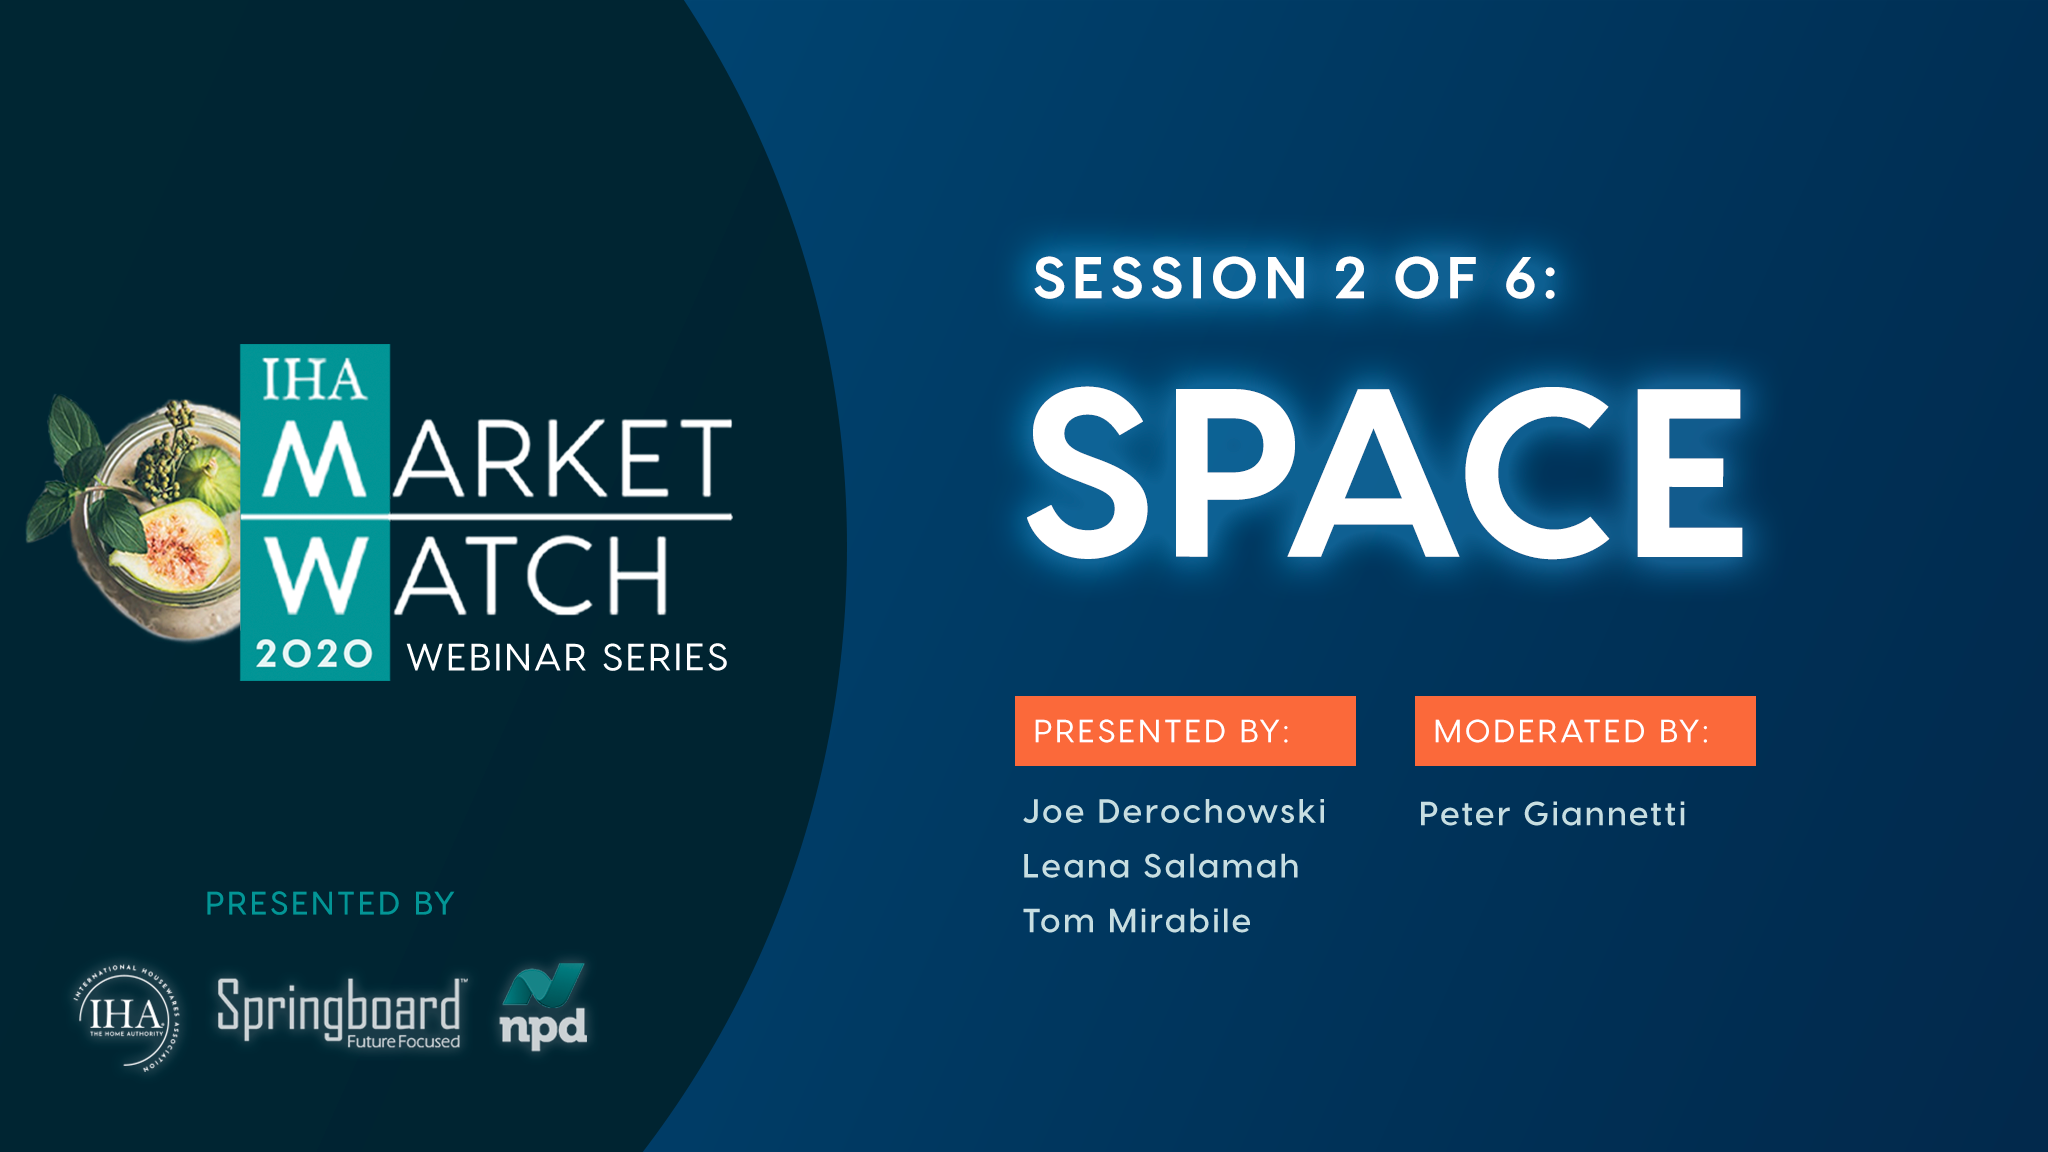 IHA Market Watch - Session 2 - Space